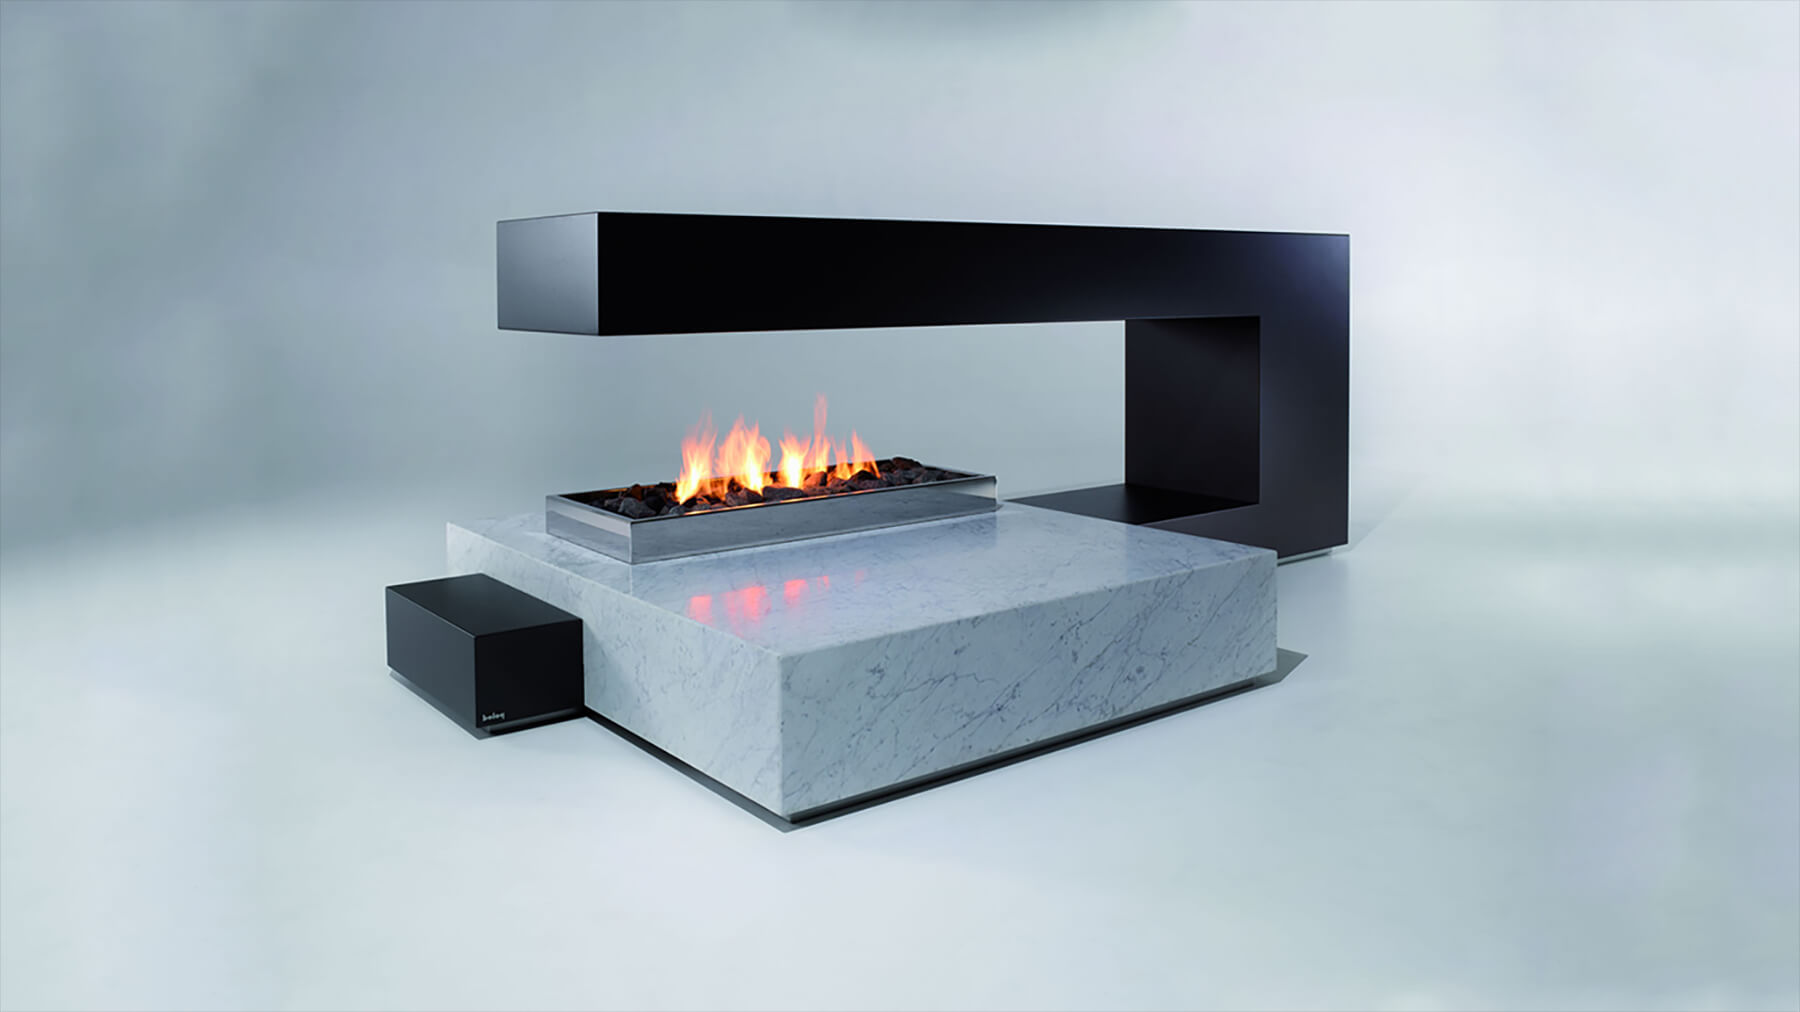 3 sided gas fireplace junsaus 2 sided electric fireplace dact us